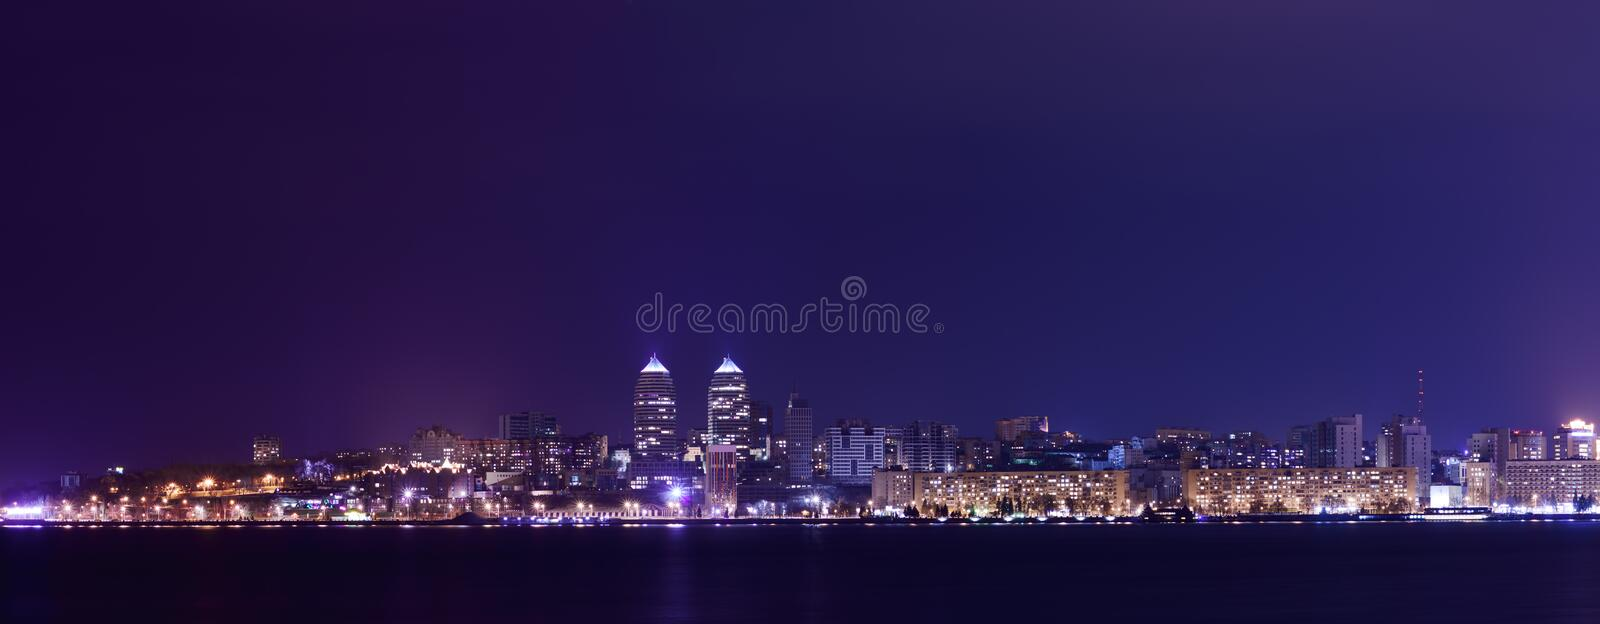 Night Skyline of Dnipropetrovsk and river Dnipro, Ukraine. Night Skyline of Dnipropetrovsk with Reflection in the river Dnipro, Ukraine royalty free stock images